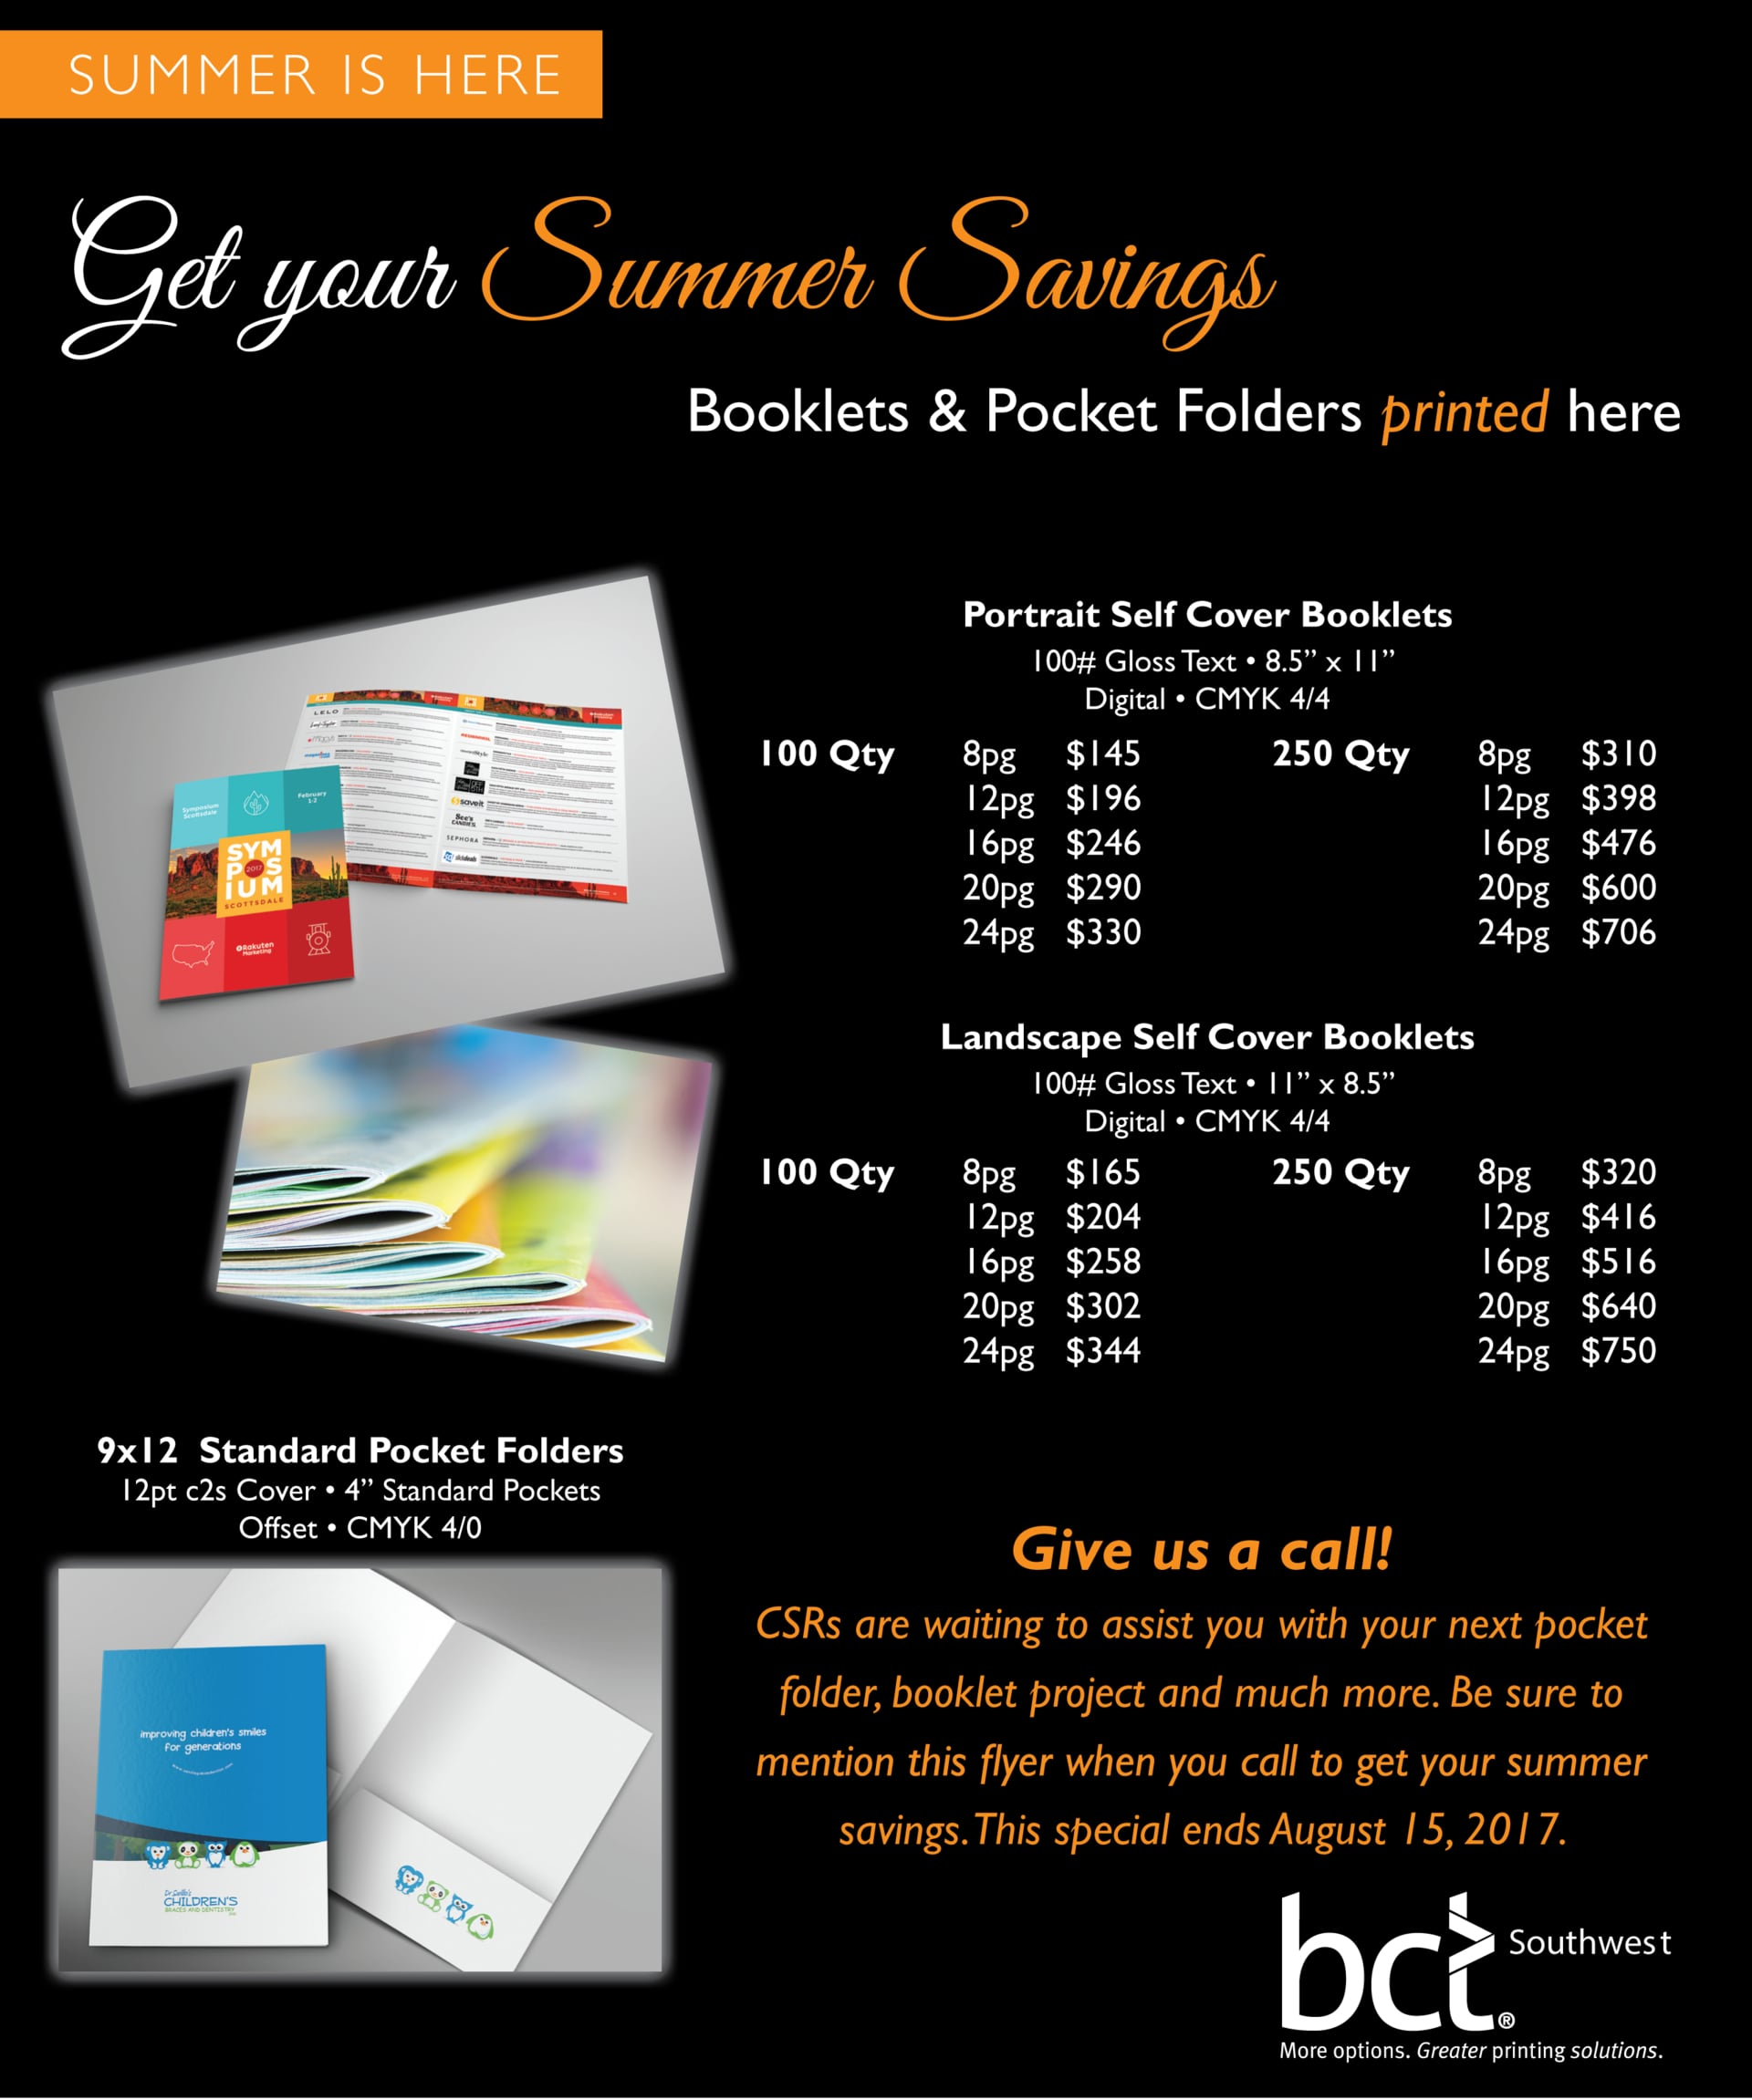 SUMMER IS HERE! Get your Summer Savings! Booklets & Pocket Folder printed here